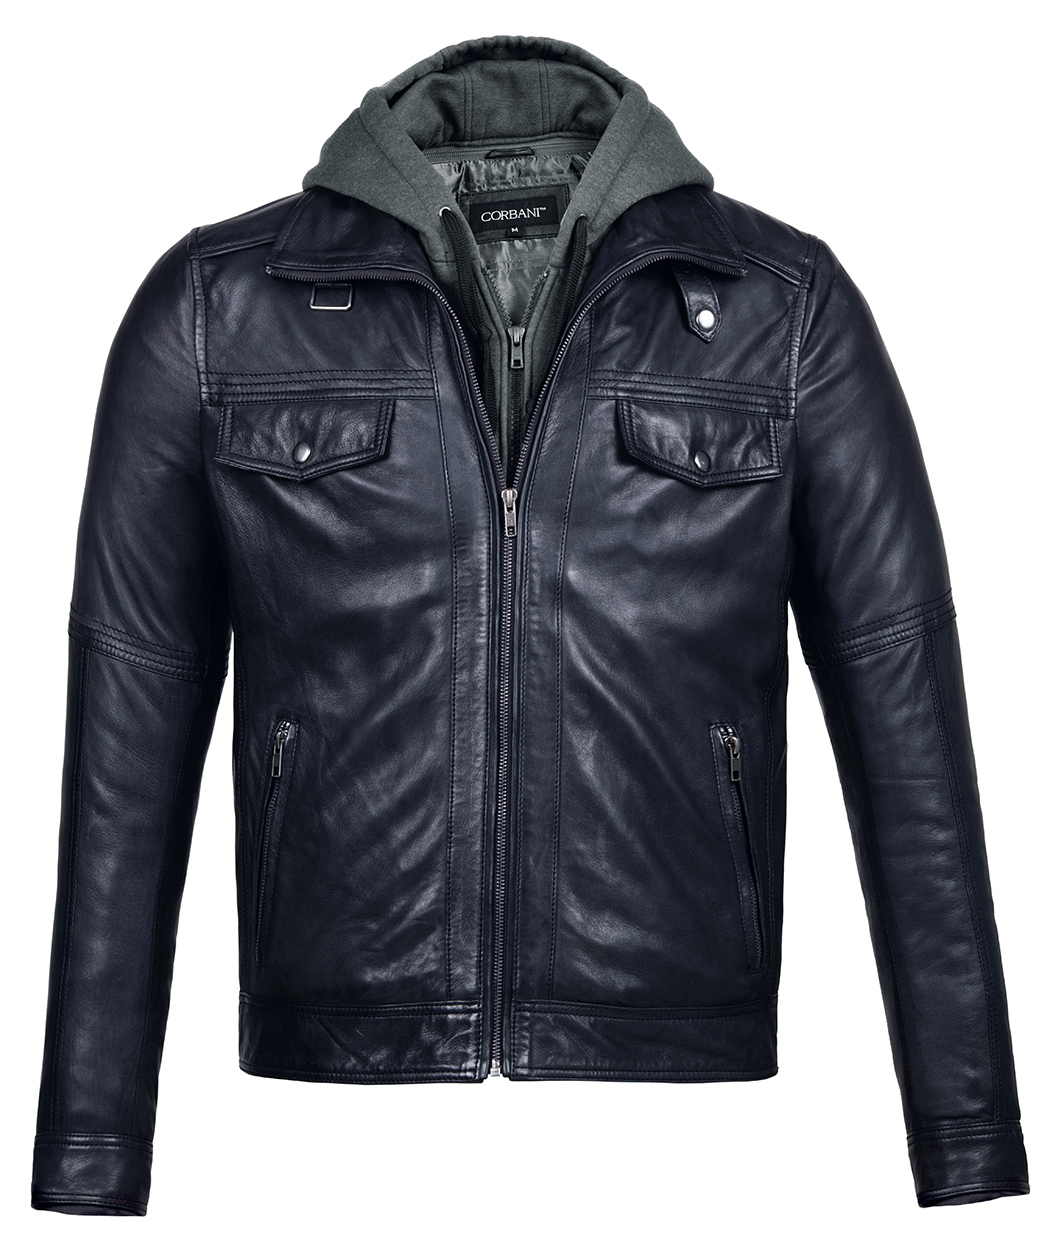 Mens Leather Jacket with Hood Vintage Black Bomber ...